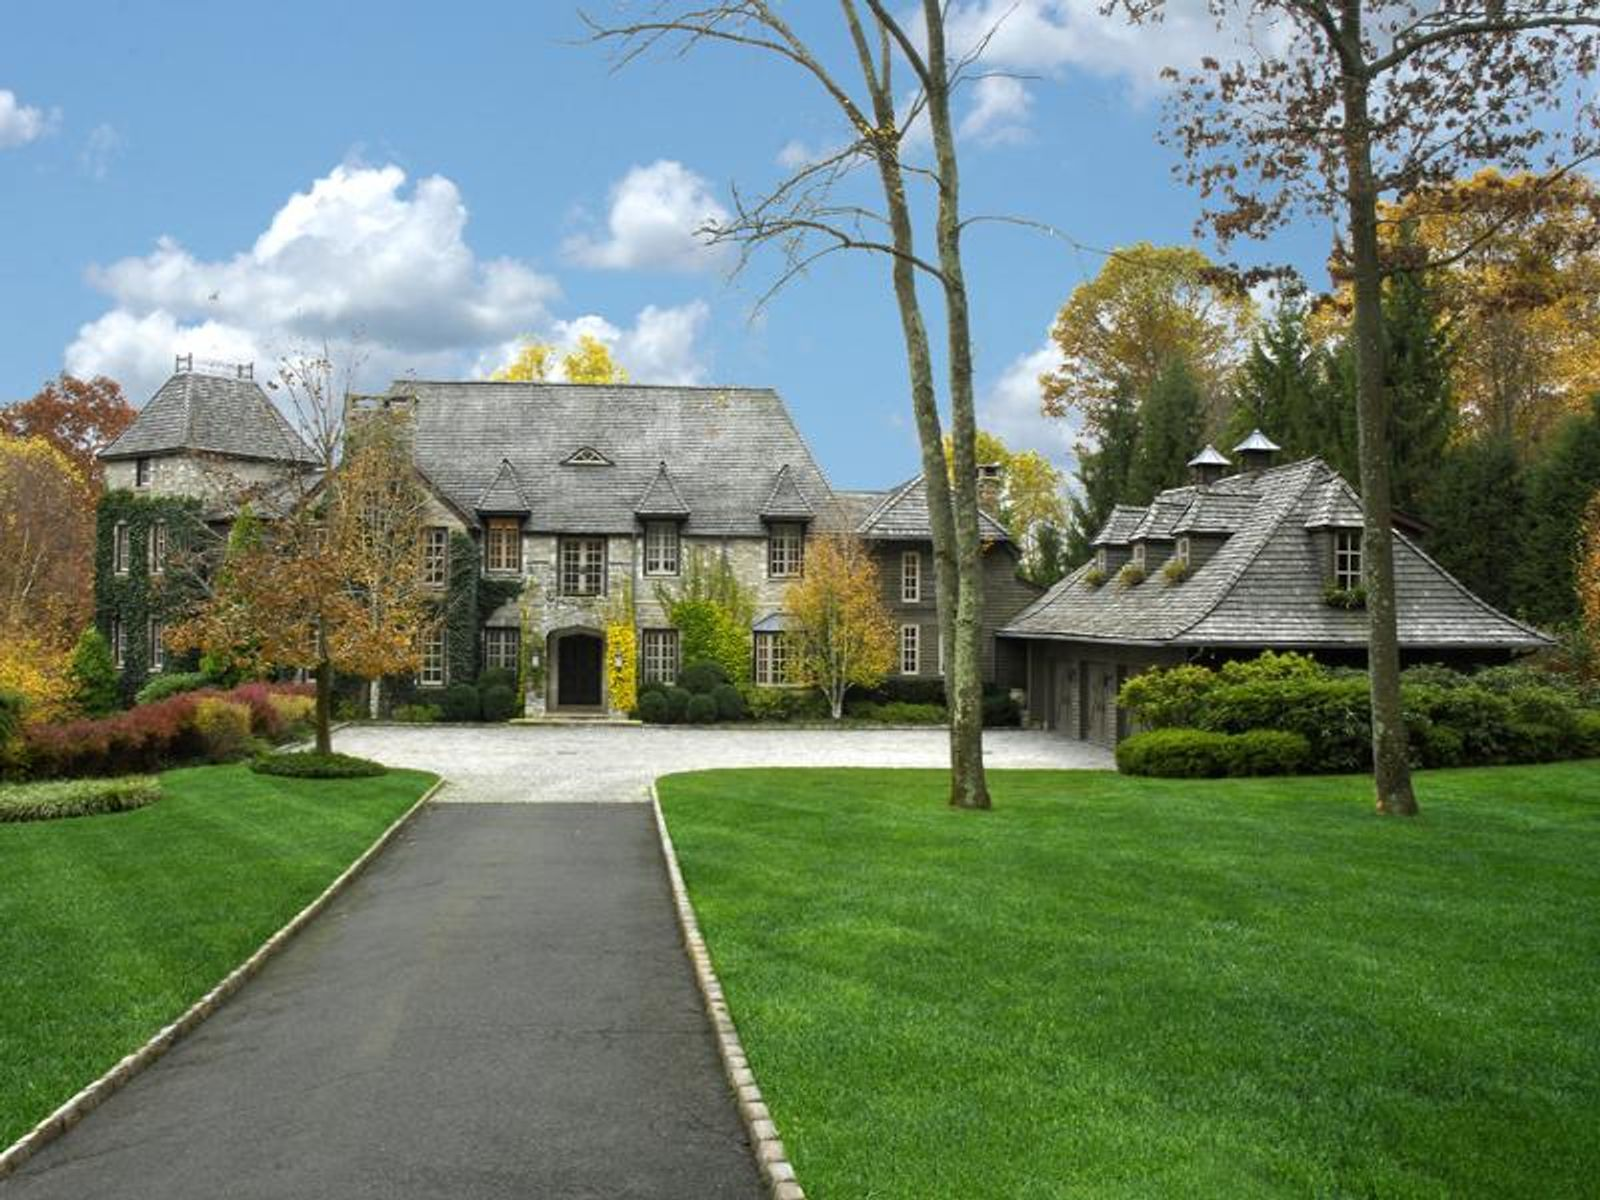 Lakefront French Country Estate, Greenwich CT Single Family Home - Greenwich Real Estate